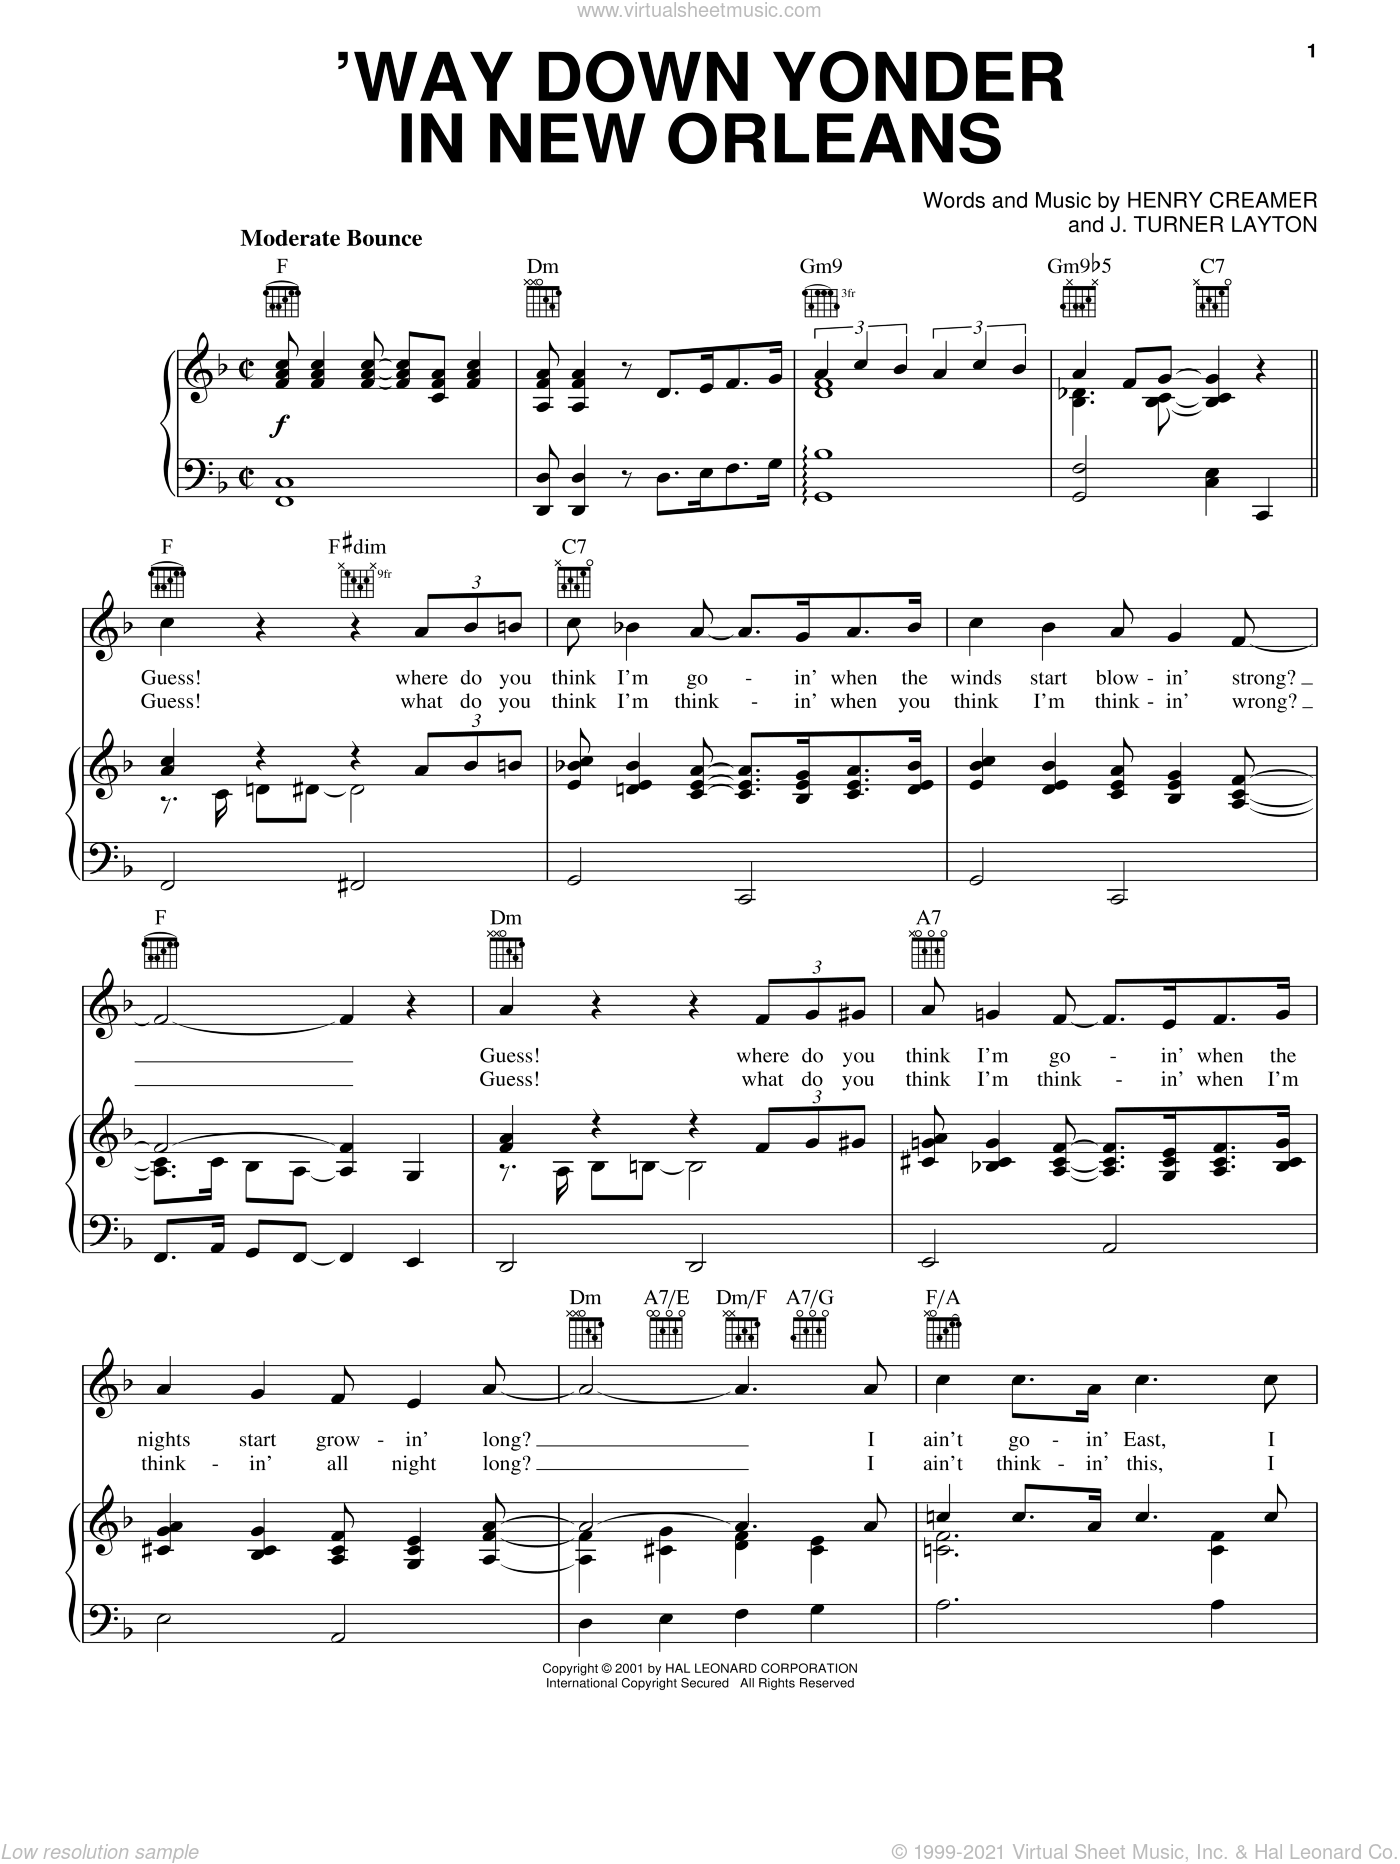 'Way Down Yonder In New Orleans sheet music for voice, piano or guitar by Turner Layton